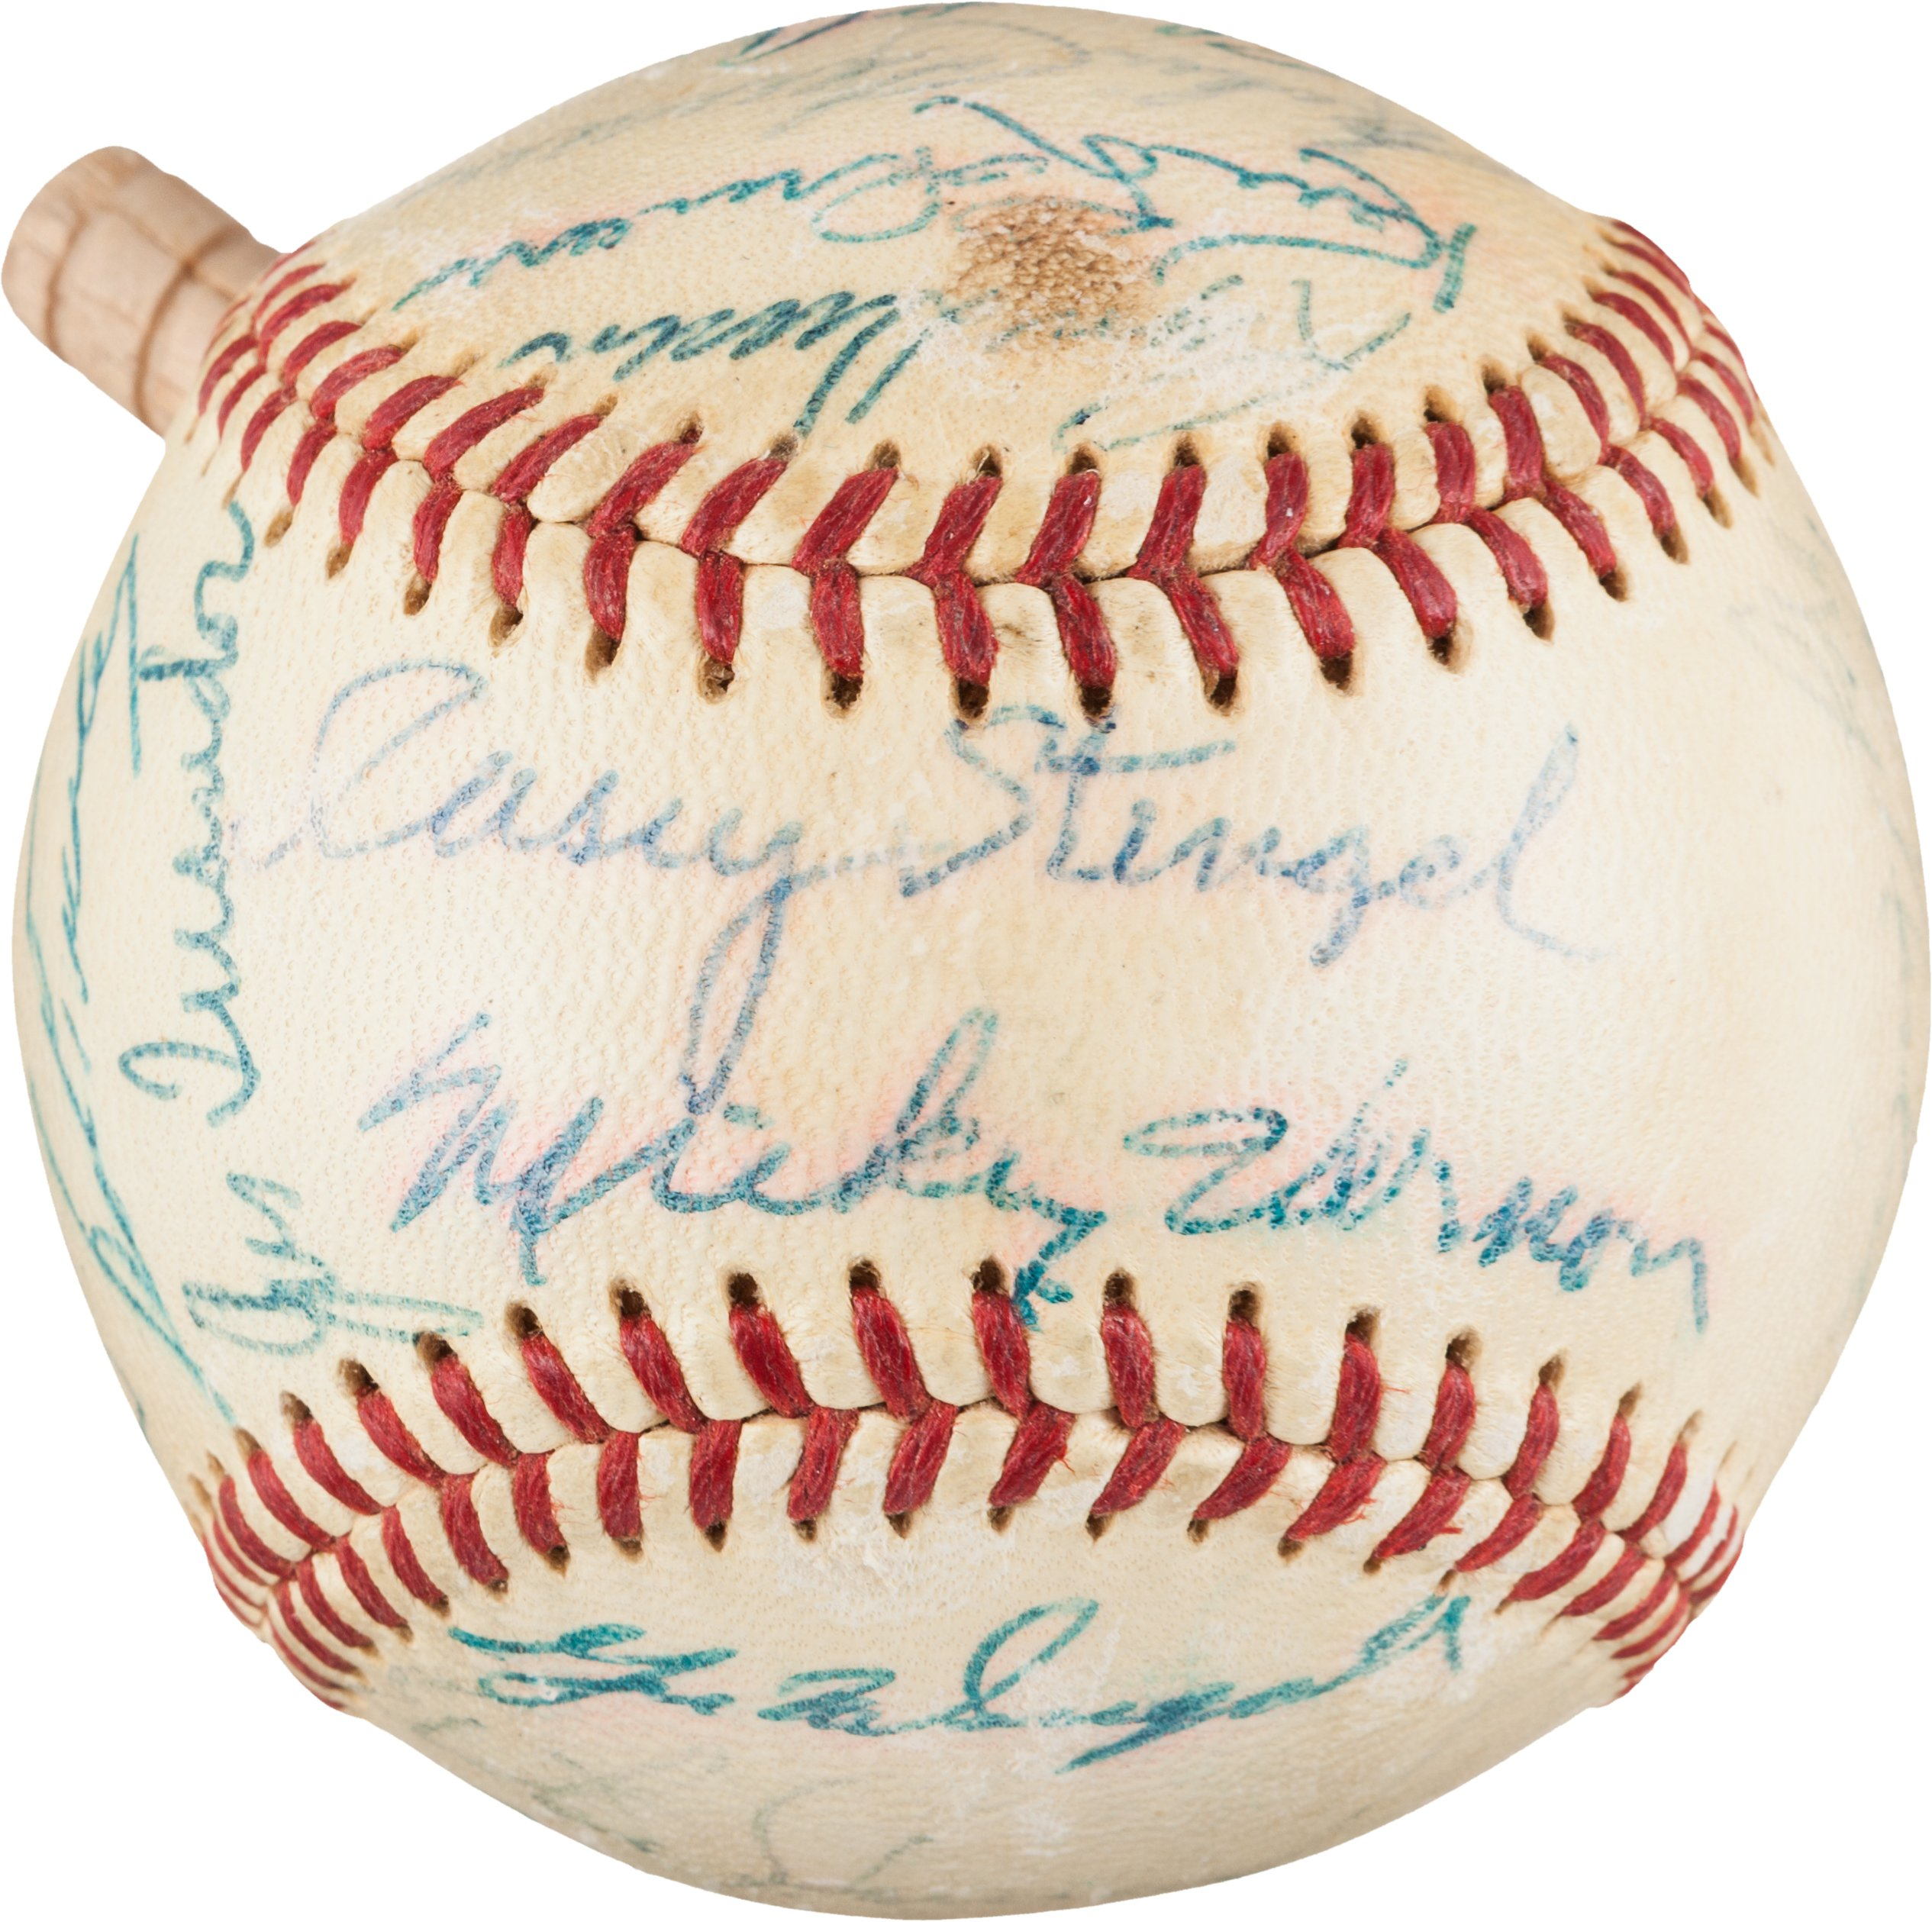 1958 American League All-Star Team Signed Baseball      Baseball